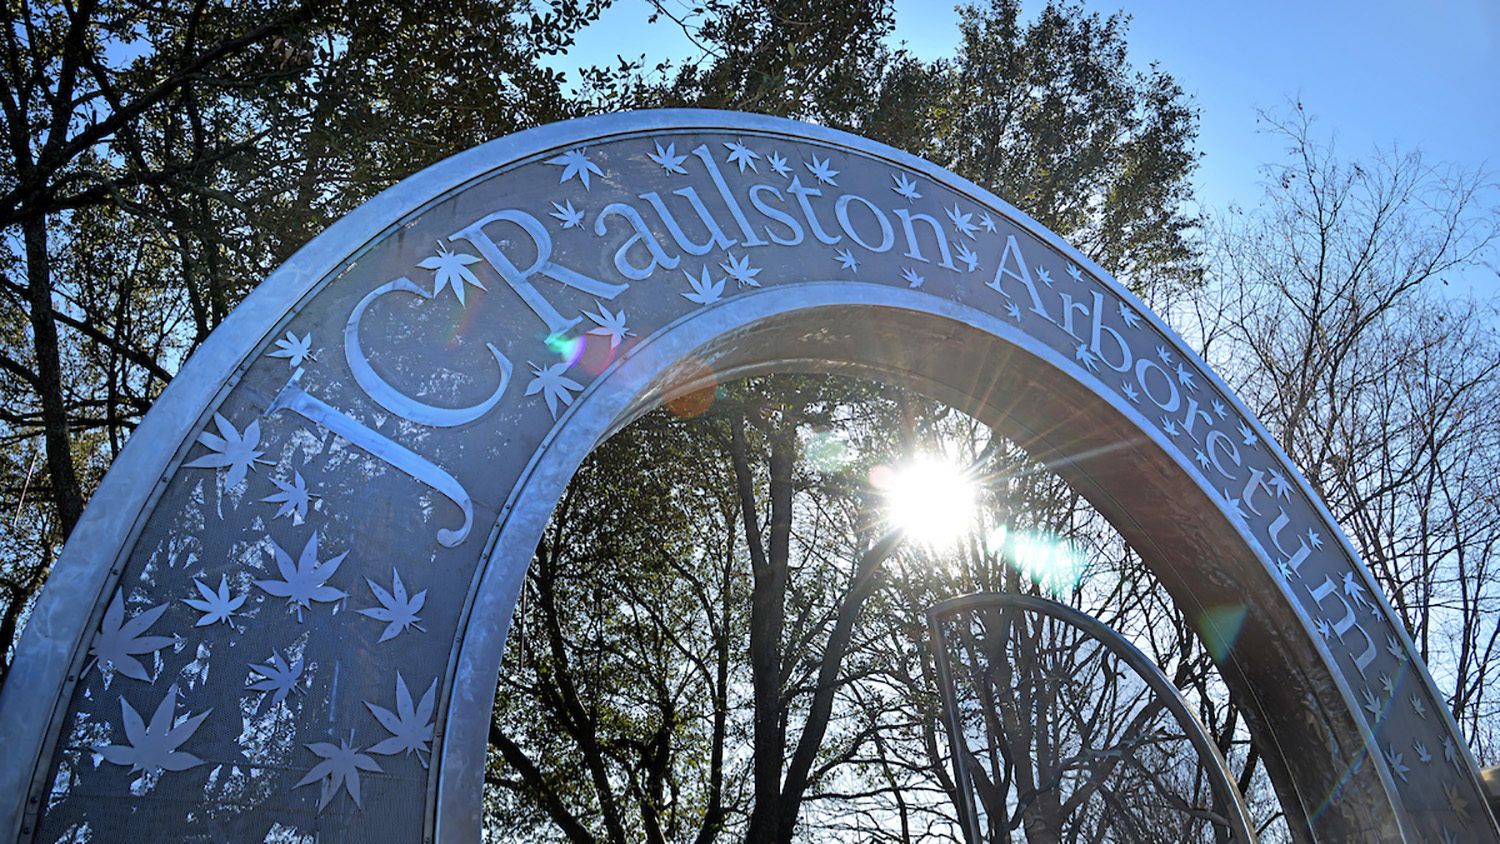 entry gate to JC Raulston Arboretum